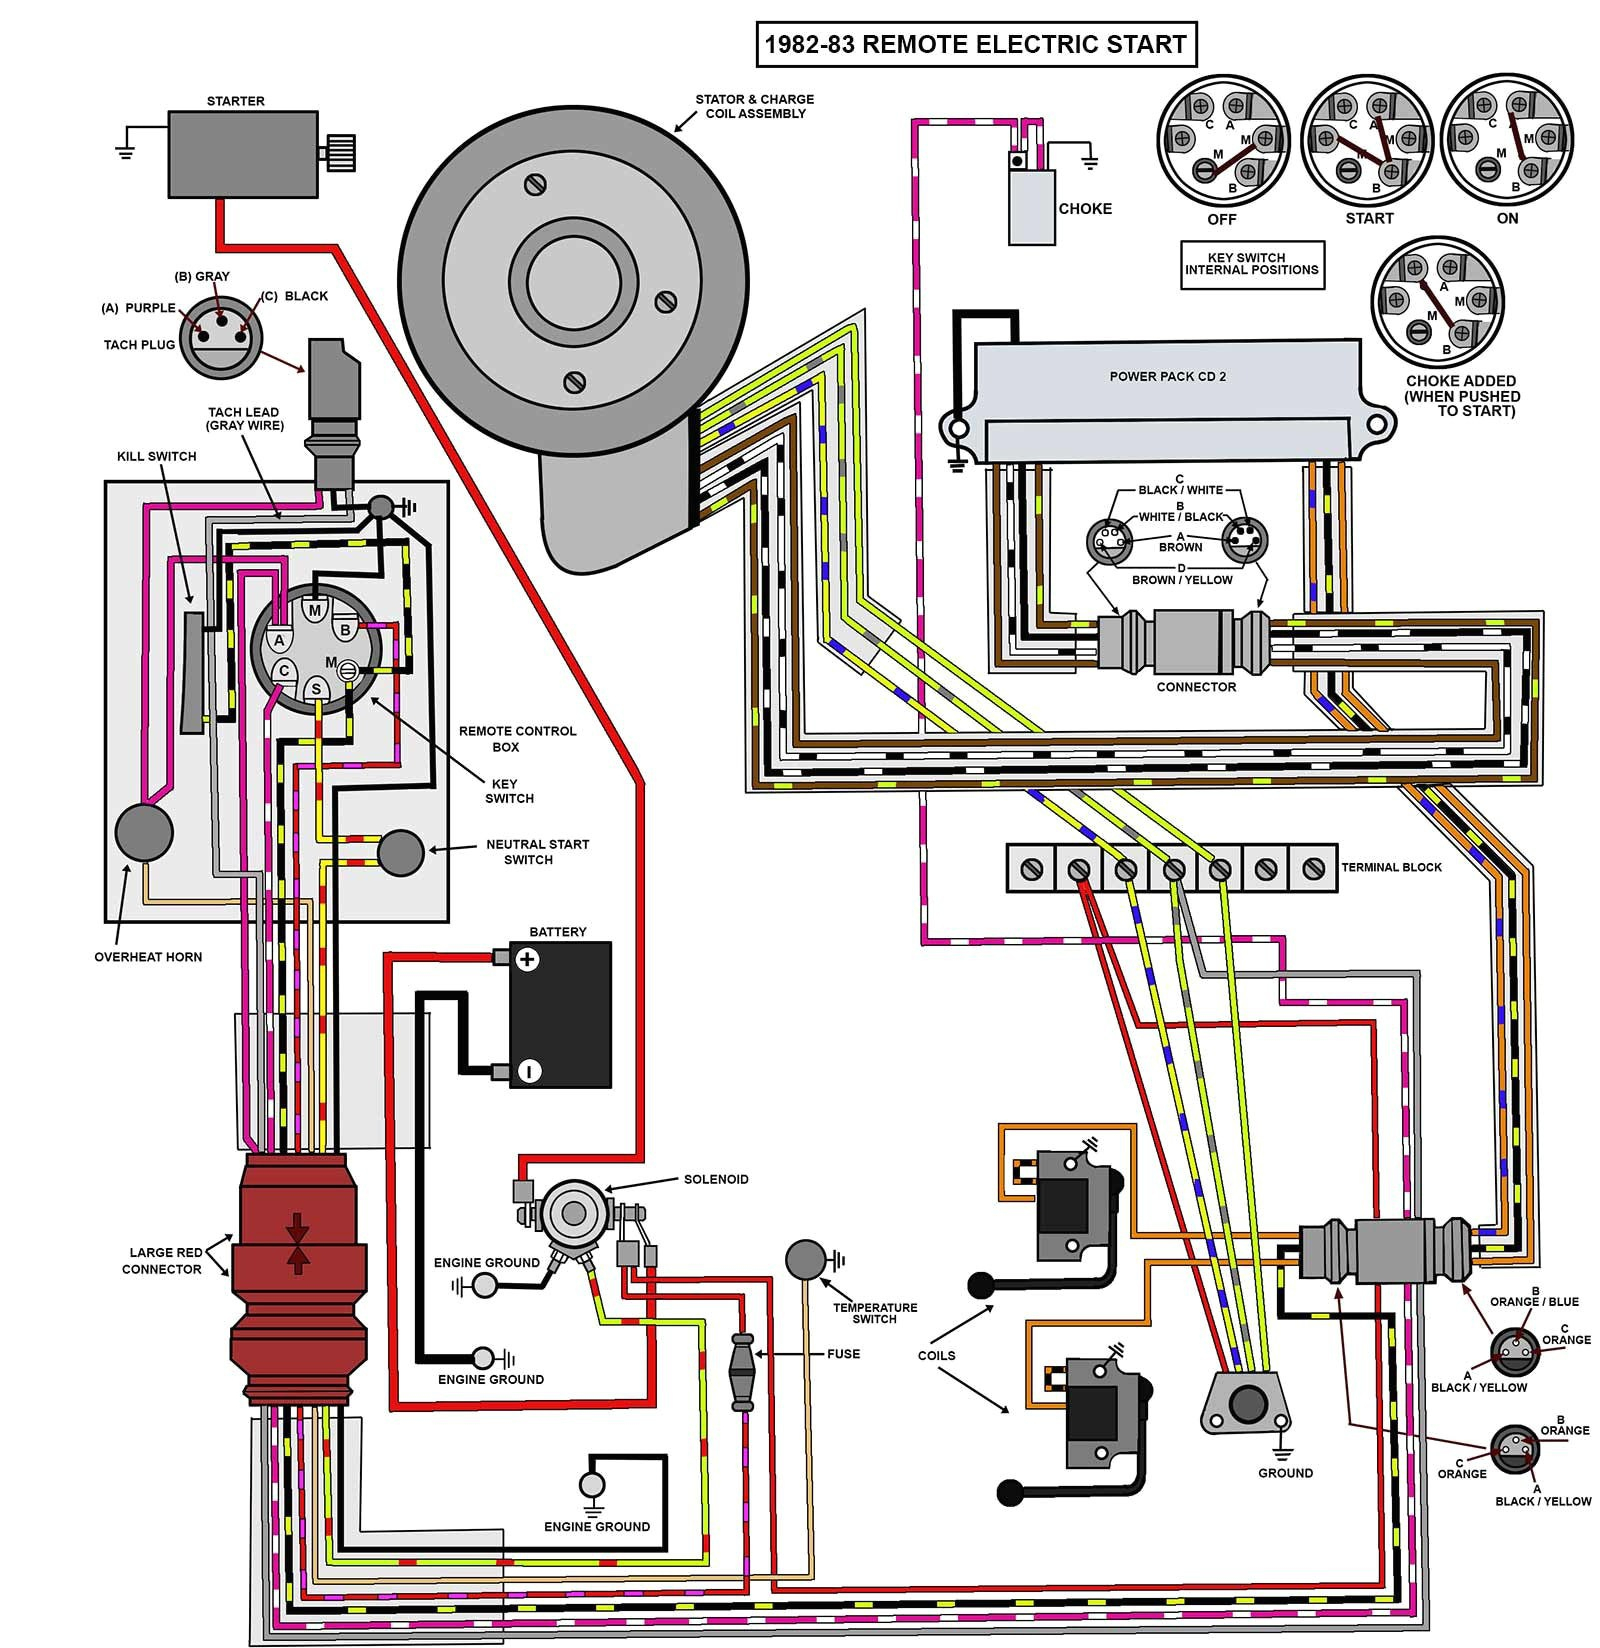 Wiring Diagram For Johnson Outboard Motor Save Evinrude Throughout - Johnson Outboard Wiring Diagram Pdf